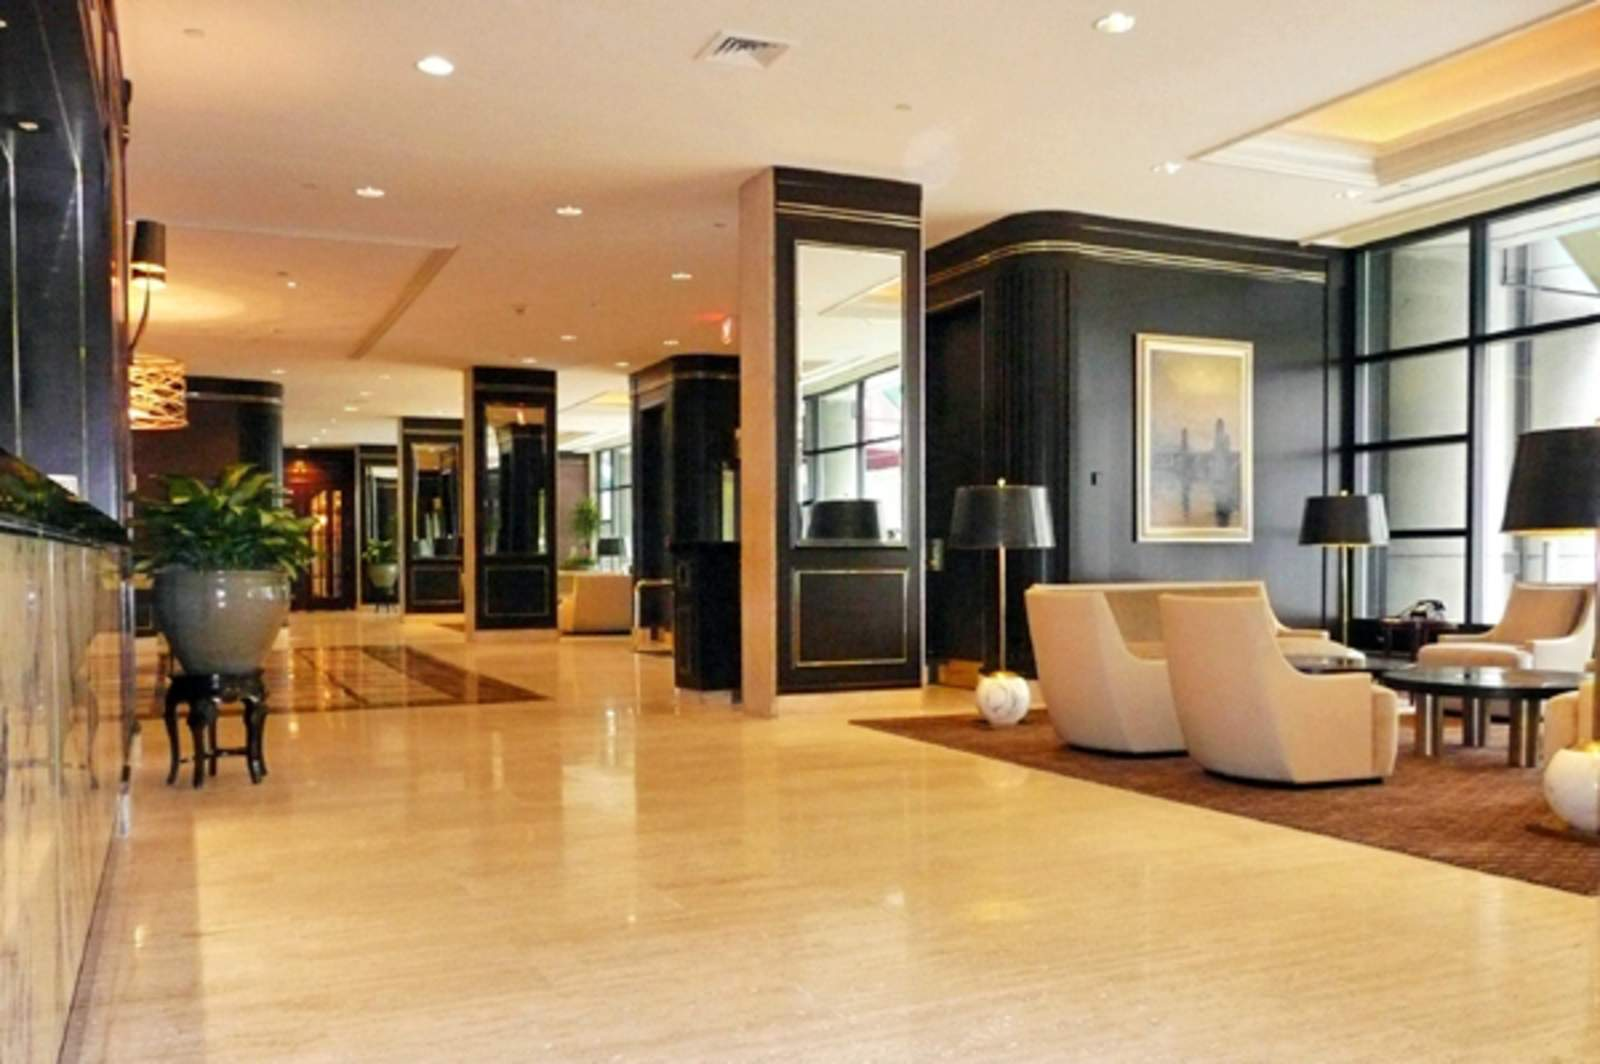 colonnade hotel Reserve your stay at the colonnade, your choice for boutique accommodations  and contemporary luxury, and get the best hotel rate when you book direct.